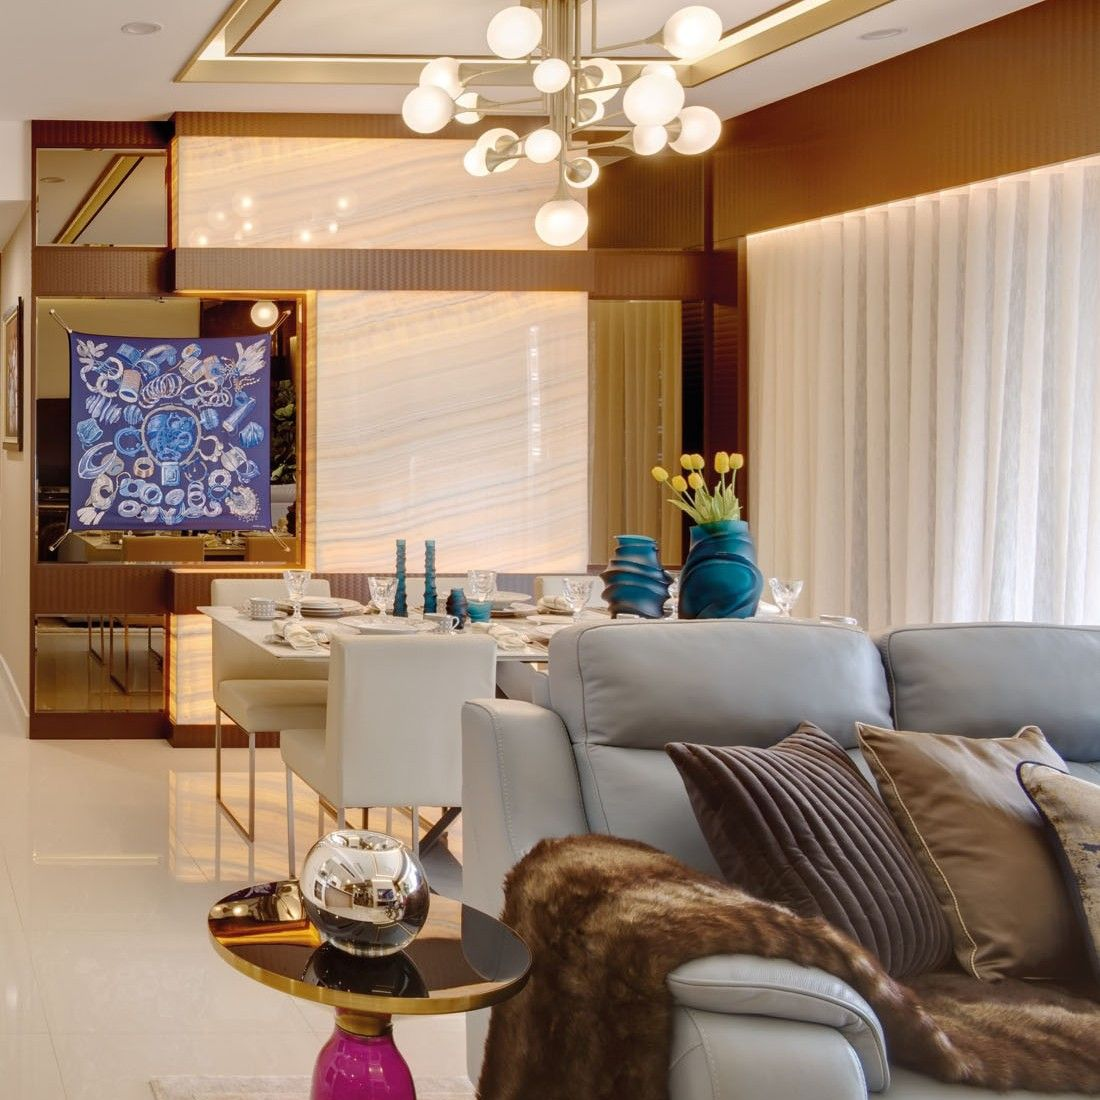 Home Tour: This Fashion-Inspired Apartment Displays The Hermès Scarf As Art